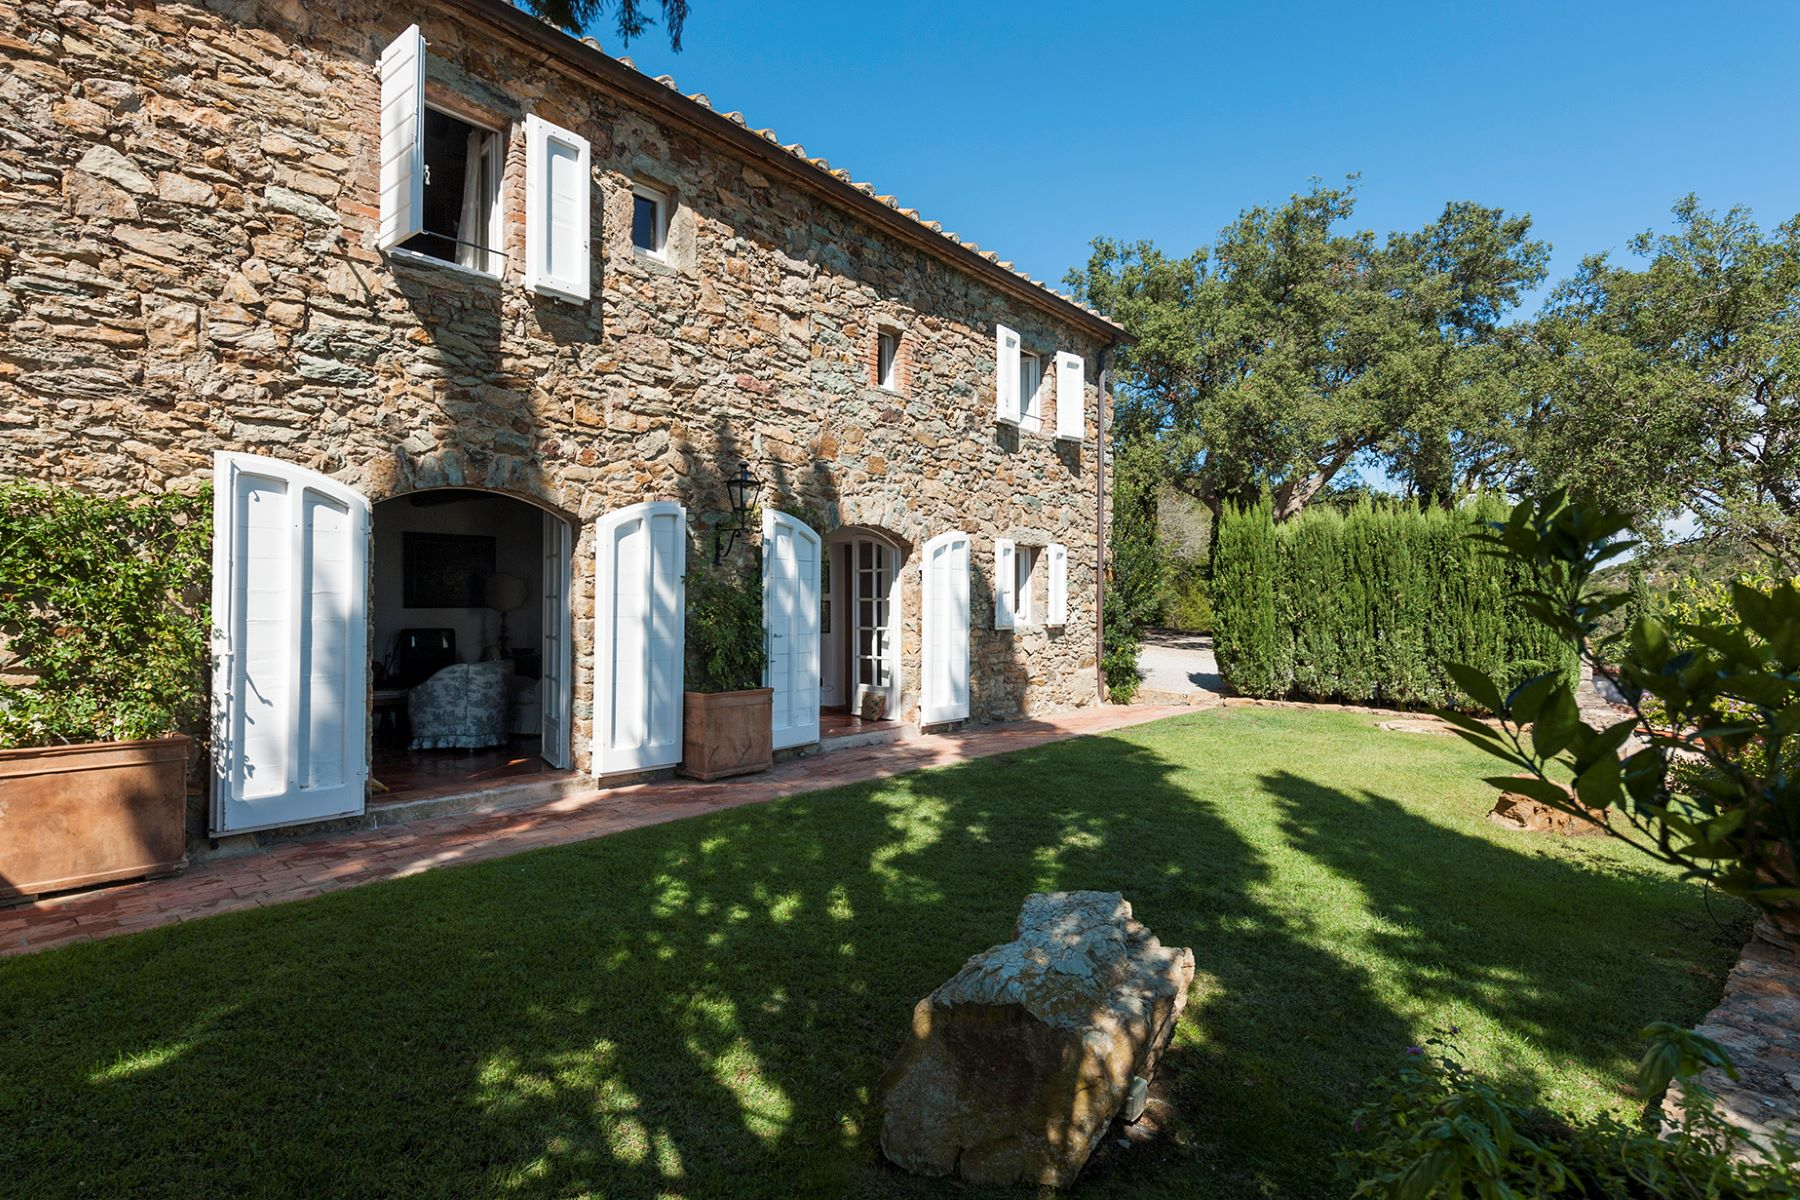 Single Family Home for Sale at Wonderful stone villa in Monte Argentario Porto Ercole, Grosseto Italy